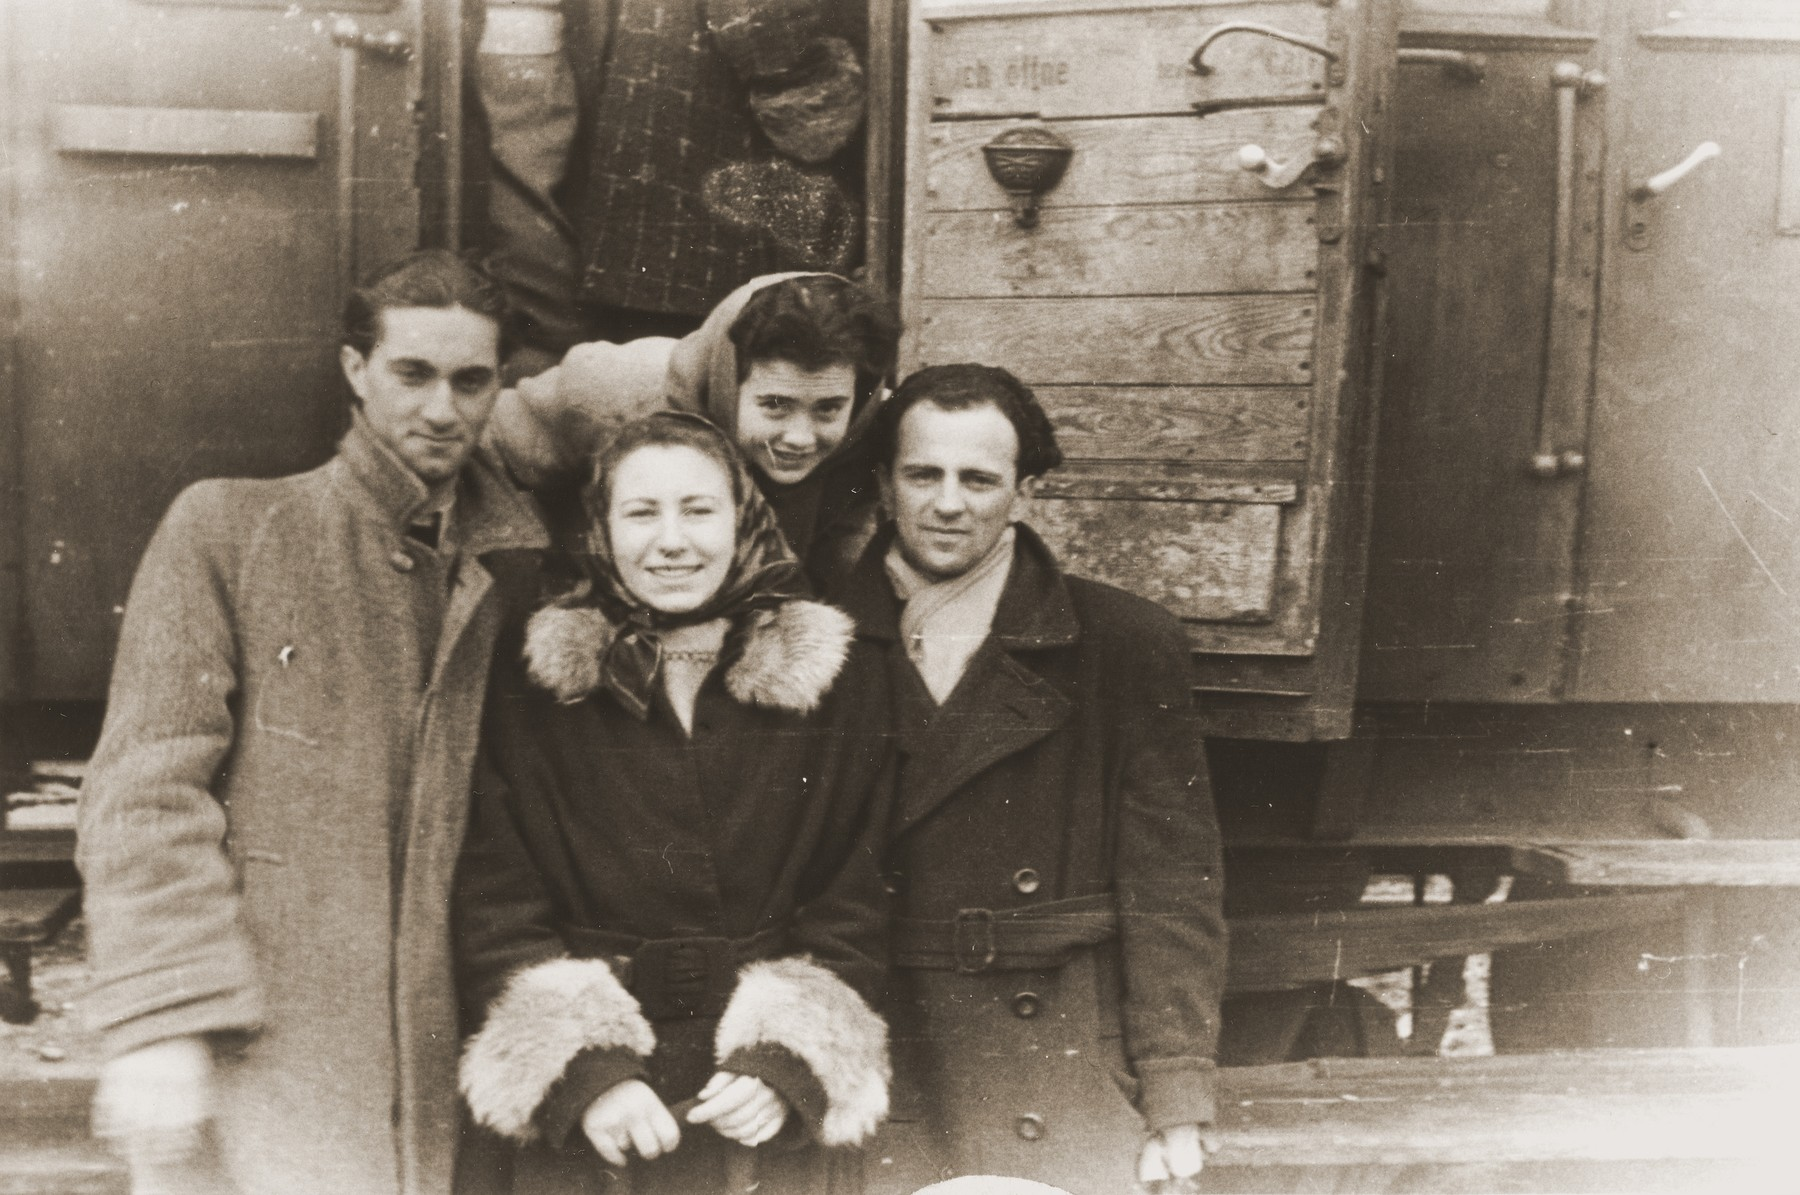 Alicja Fajnsztejn poses with a group of friends before their departure by train to Bremen.  From left to right are Mark Finkel, Alicja Fajnsztejn and Abramovich.  Irene Kane is in the back.